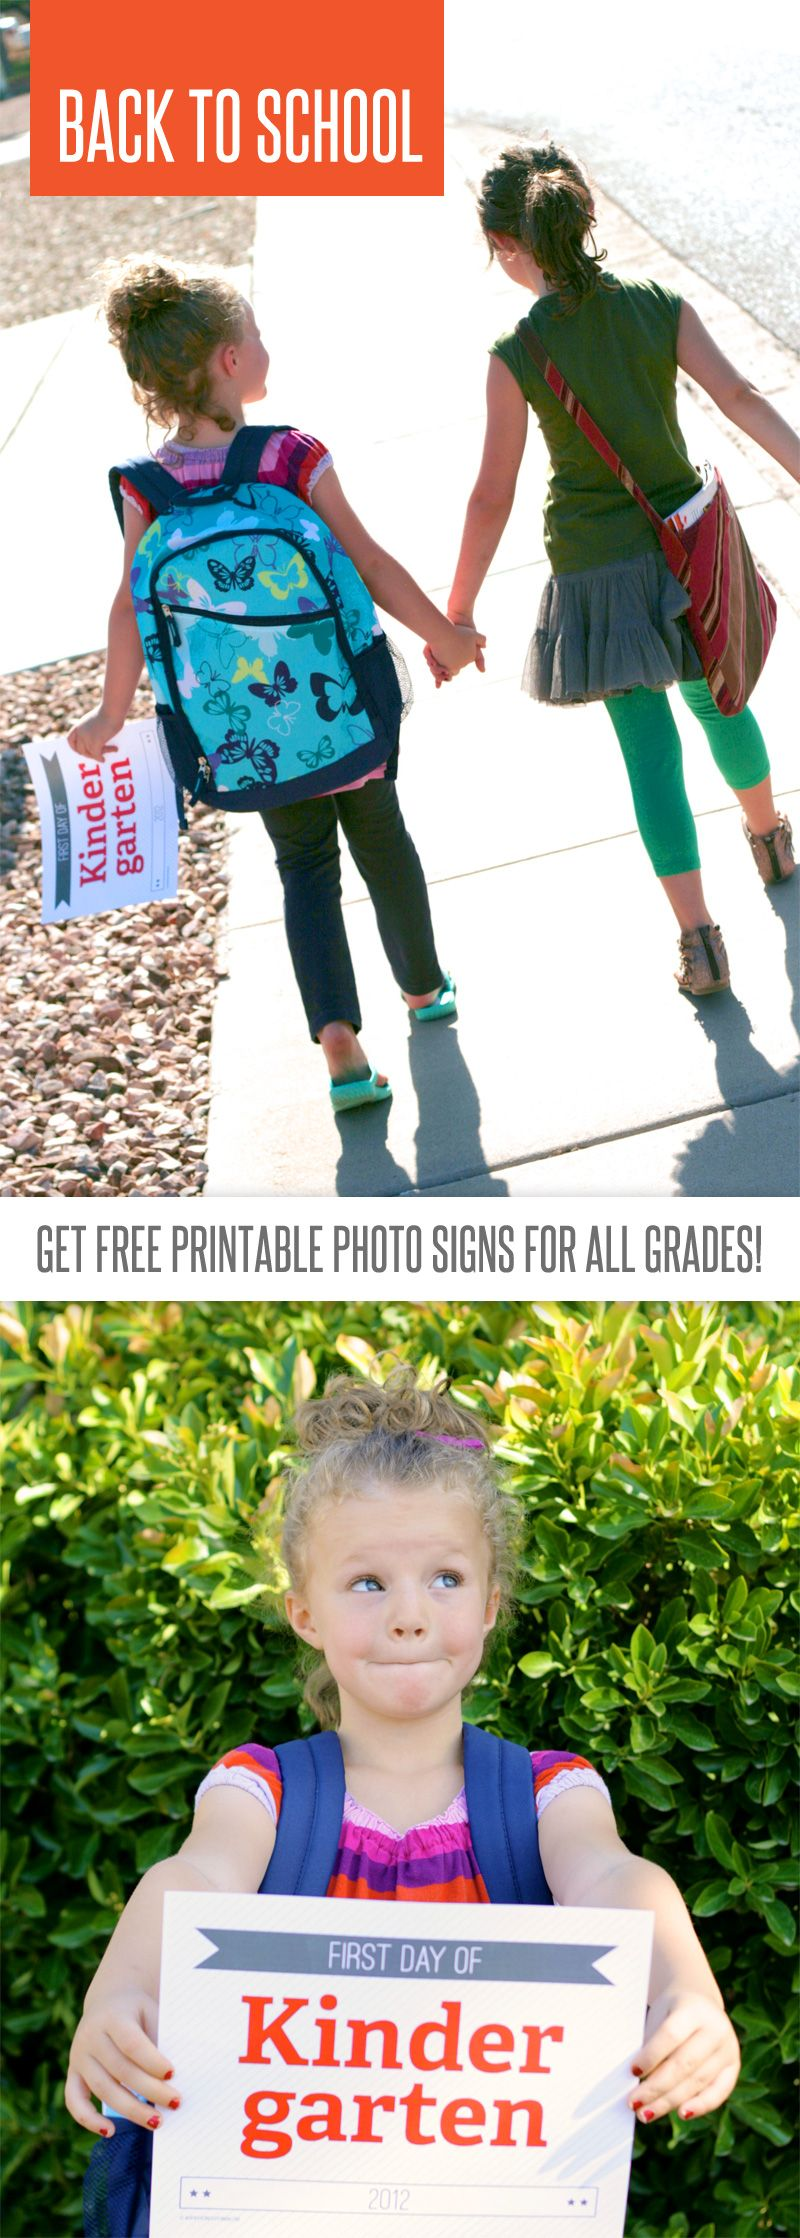 Love these signs for first day pictures! #backtoschool #back2school